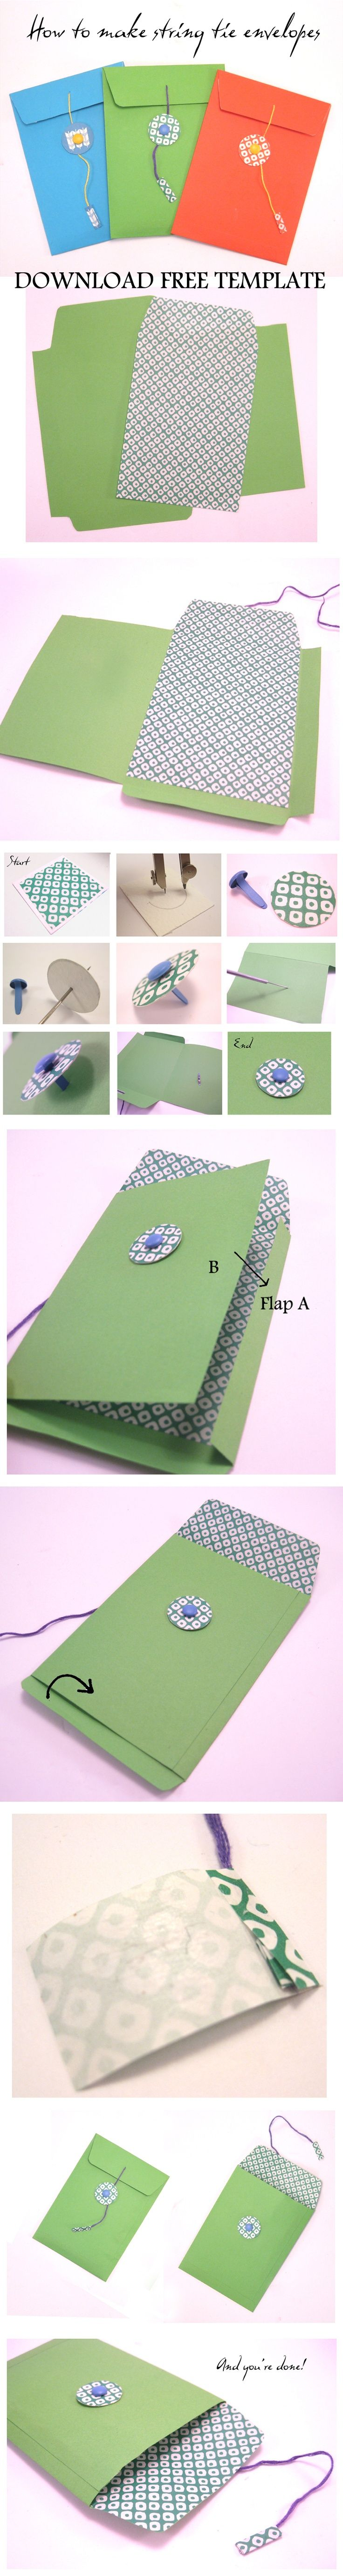 These super easy string tie envelopes will amaze your guests with their professional look. You can customise them to match your Wedding Stationary or your wedding day colour palette. Use them to package your wedding favours or even the rings!Click on the image to download your free template.